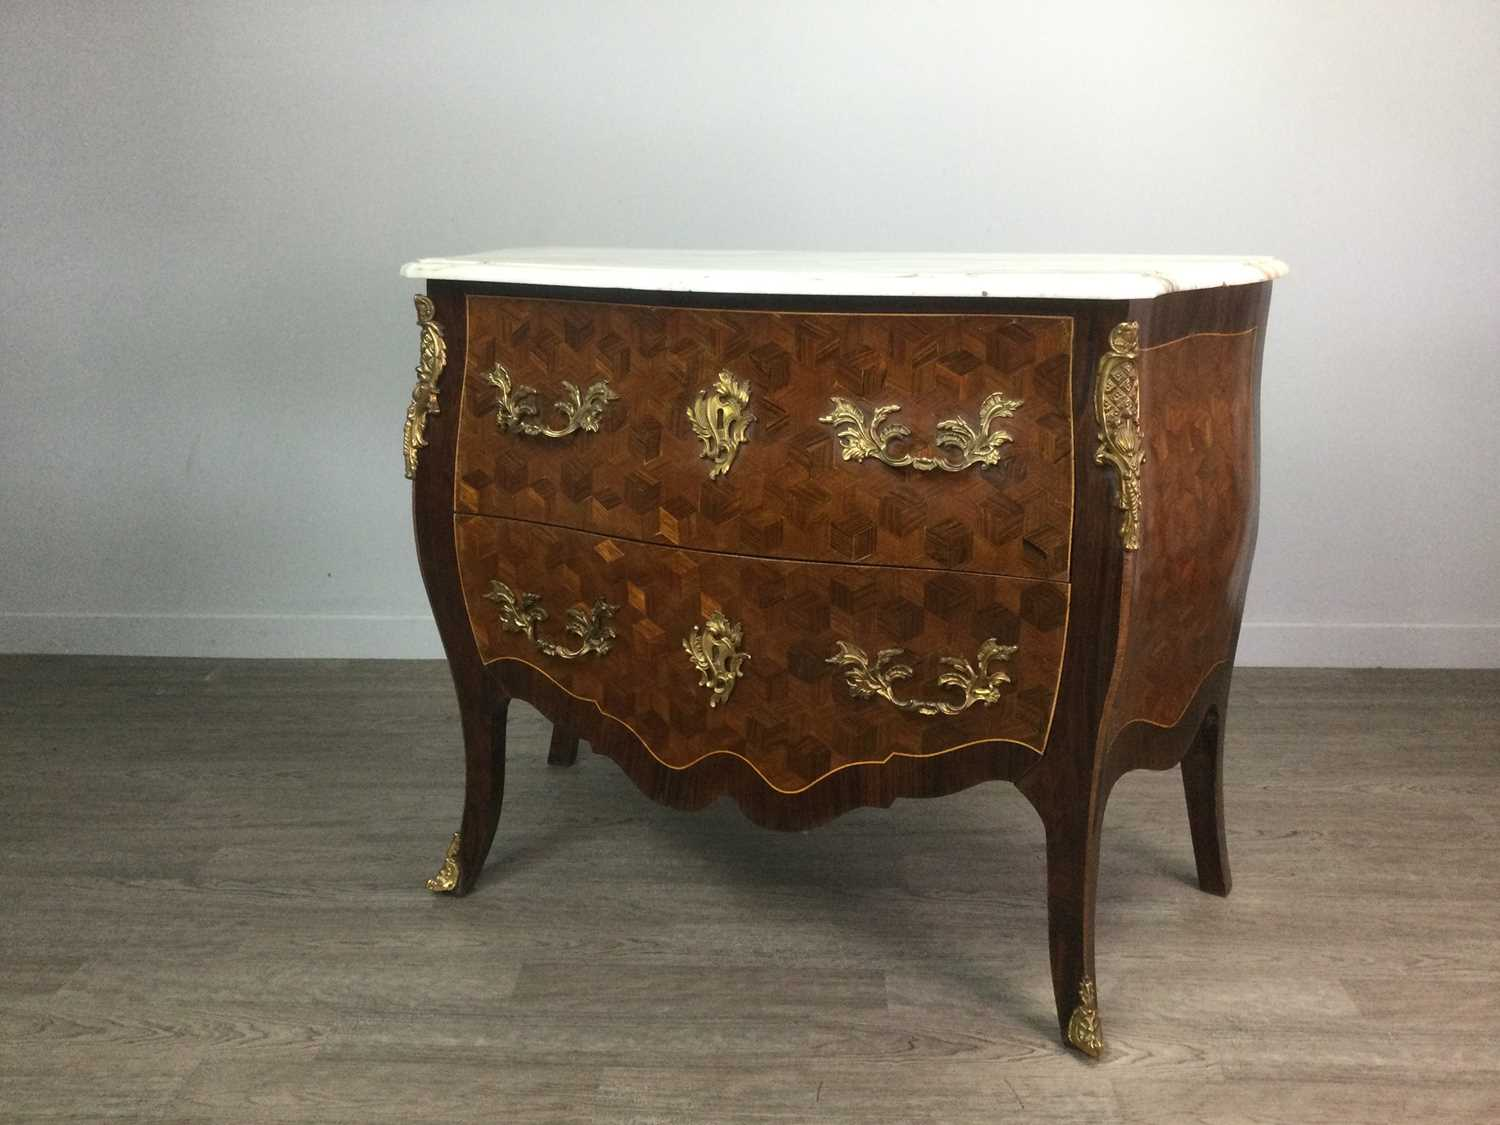 Lot 1376 - AN IMPRESSIVE GILT METAL MOUNTED ROSEWOOD AND KINGWOOD MARQUETRY COMMODE OF LOUIS XV DESIGN